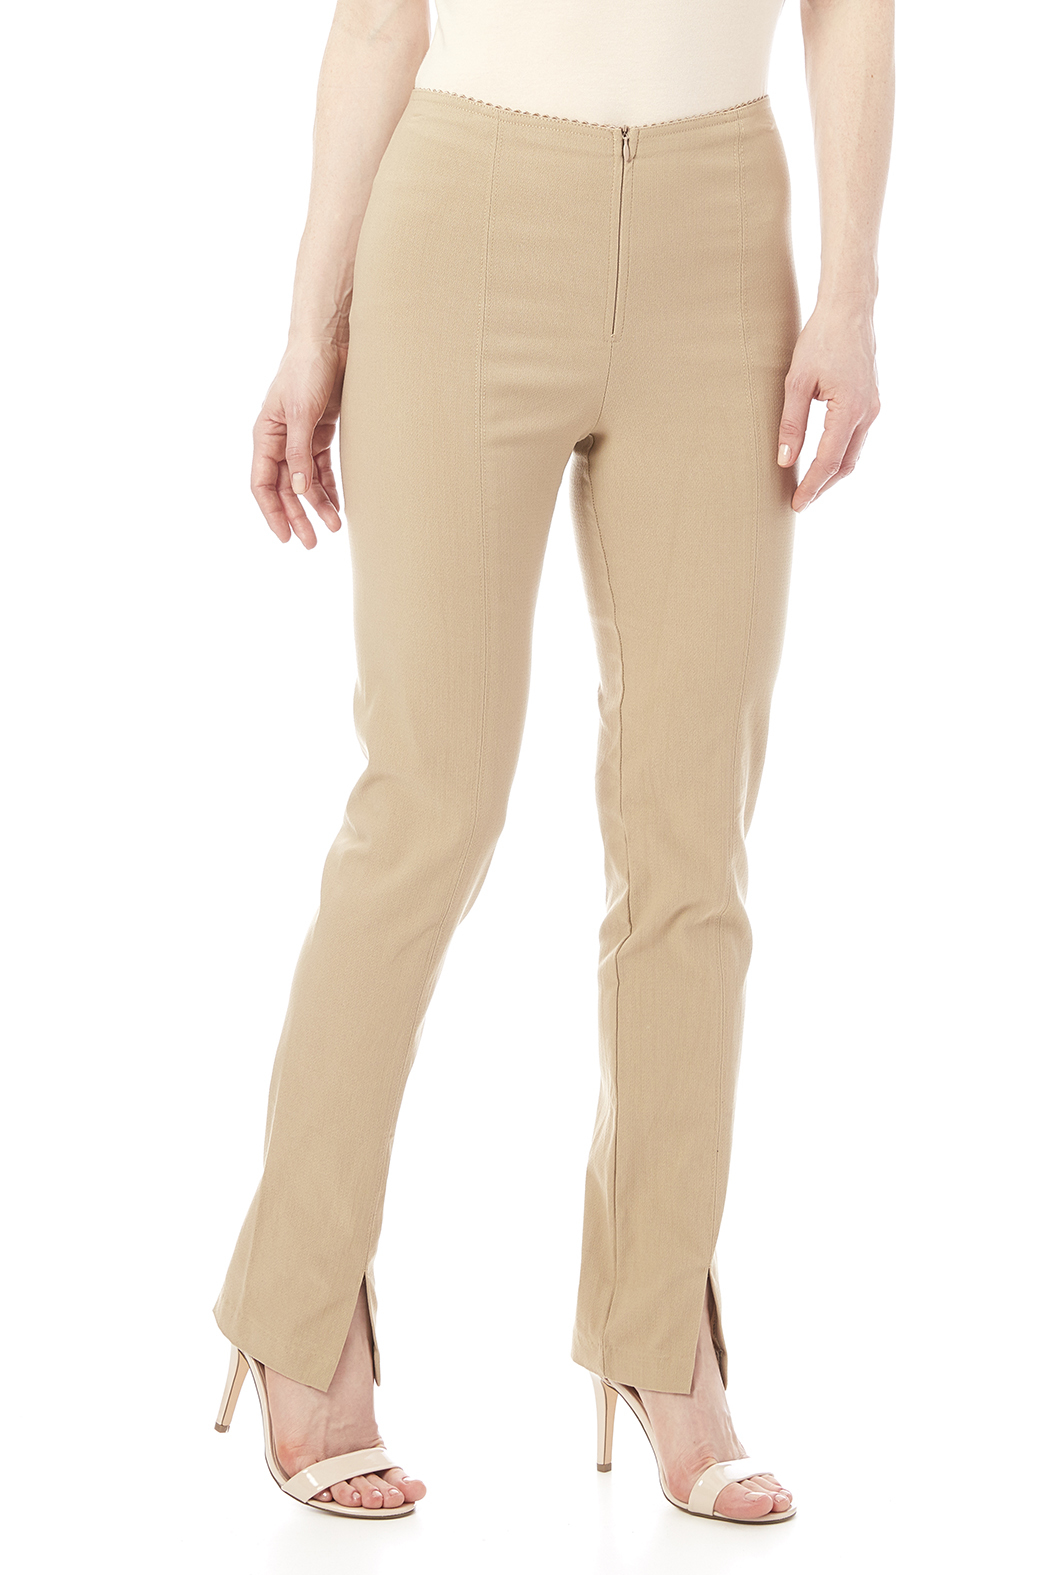 Mesmerize Tapered Leg Pant - Main Image